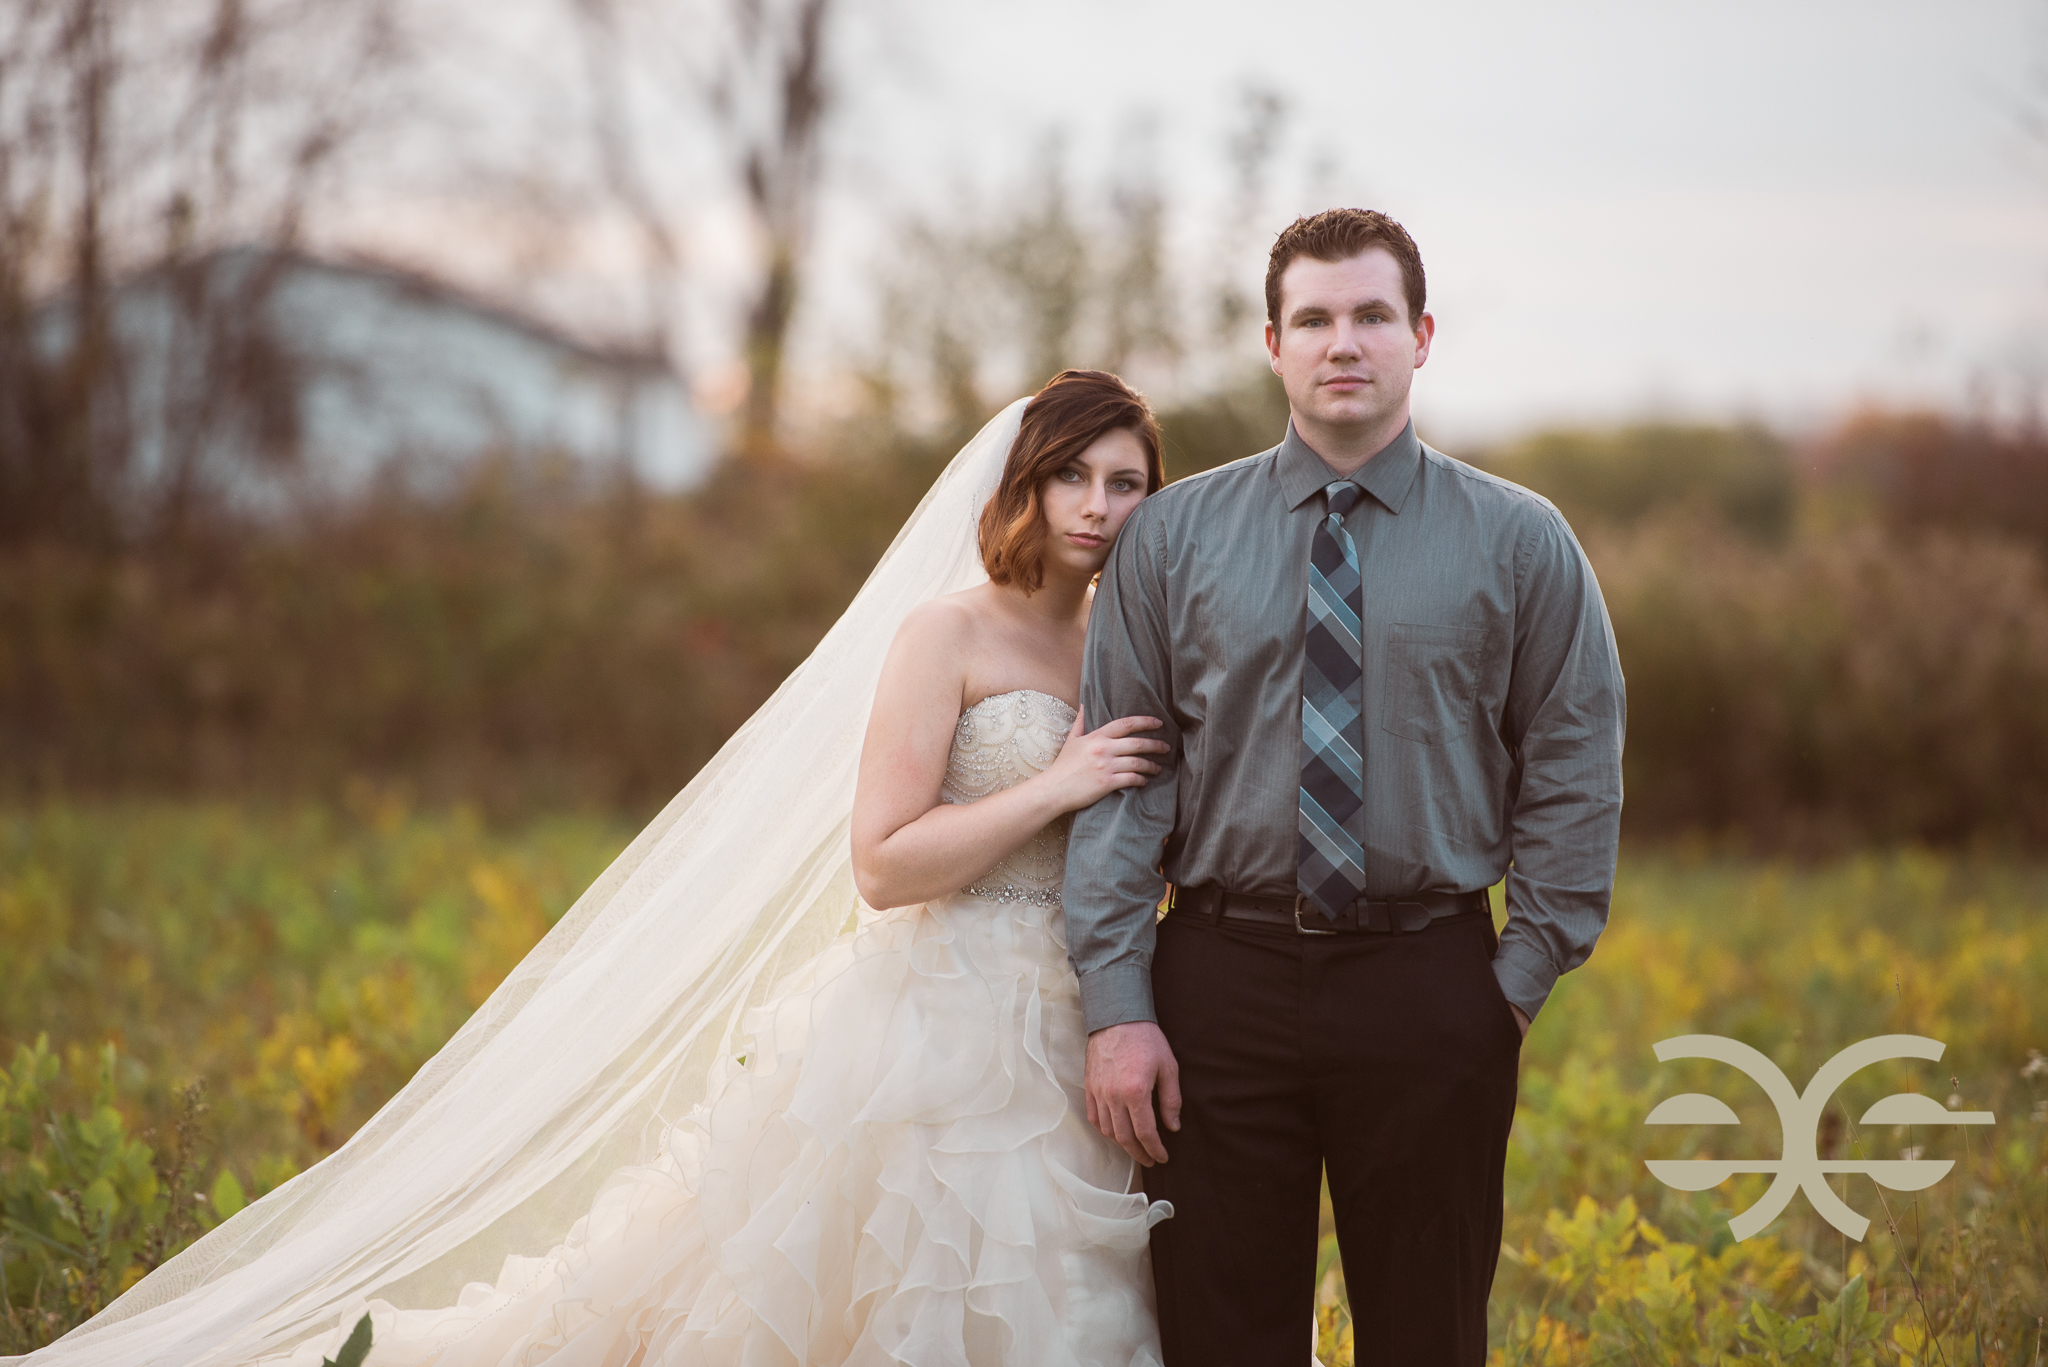 A bride and groom on their wedding day in Buffalo, NY